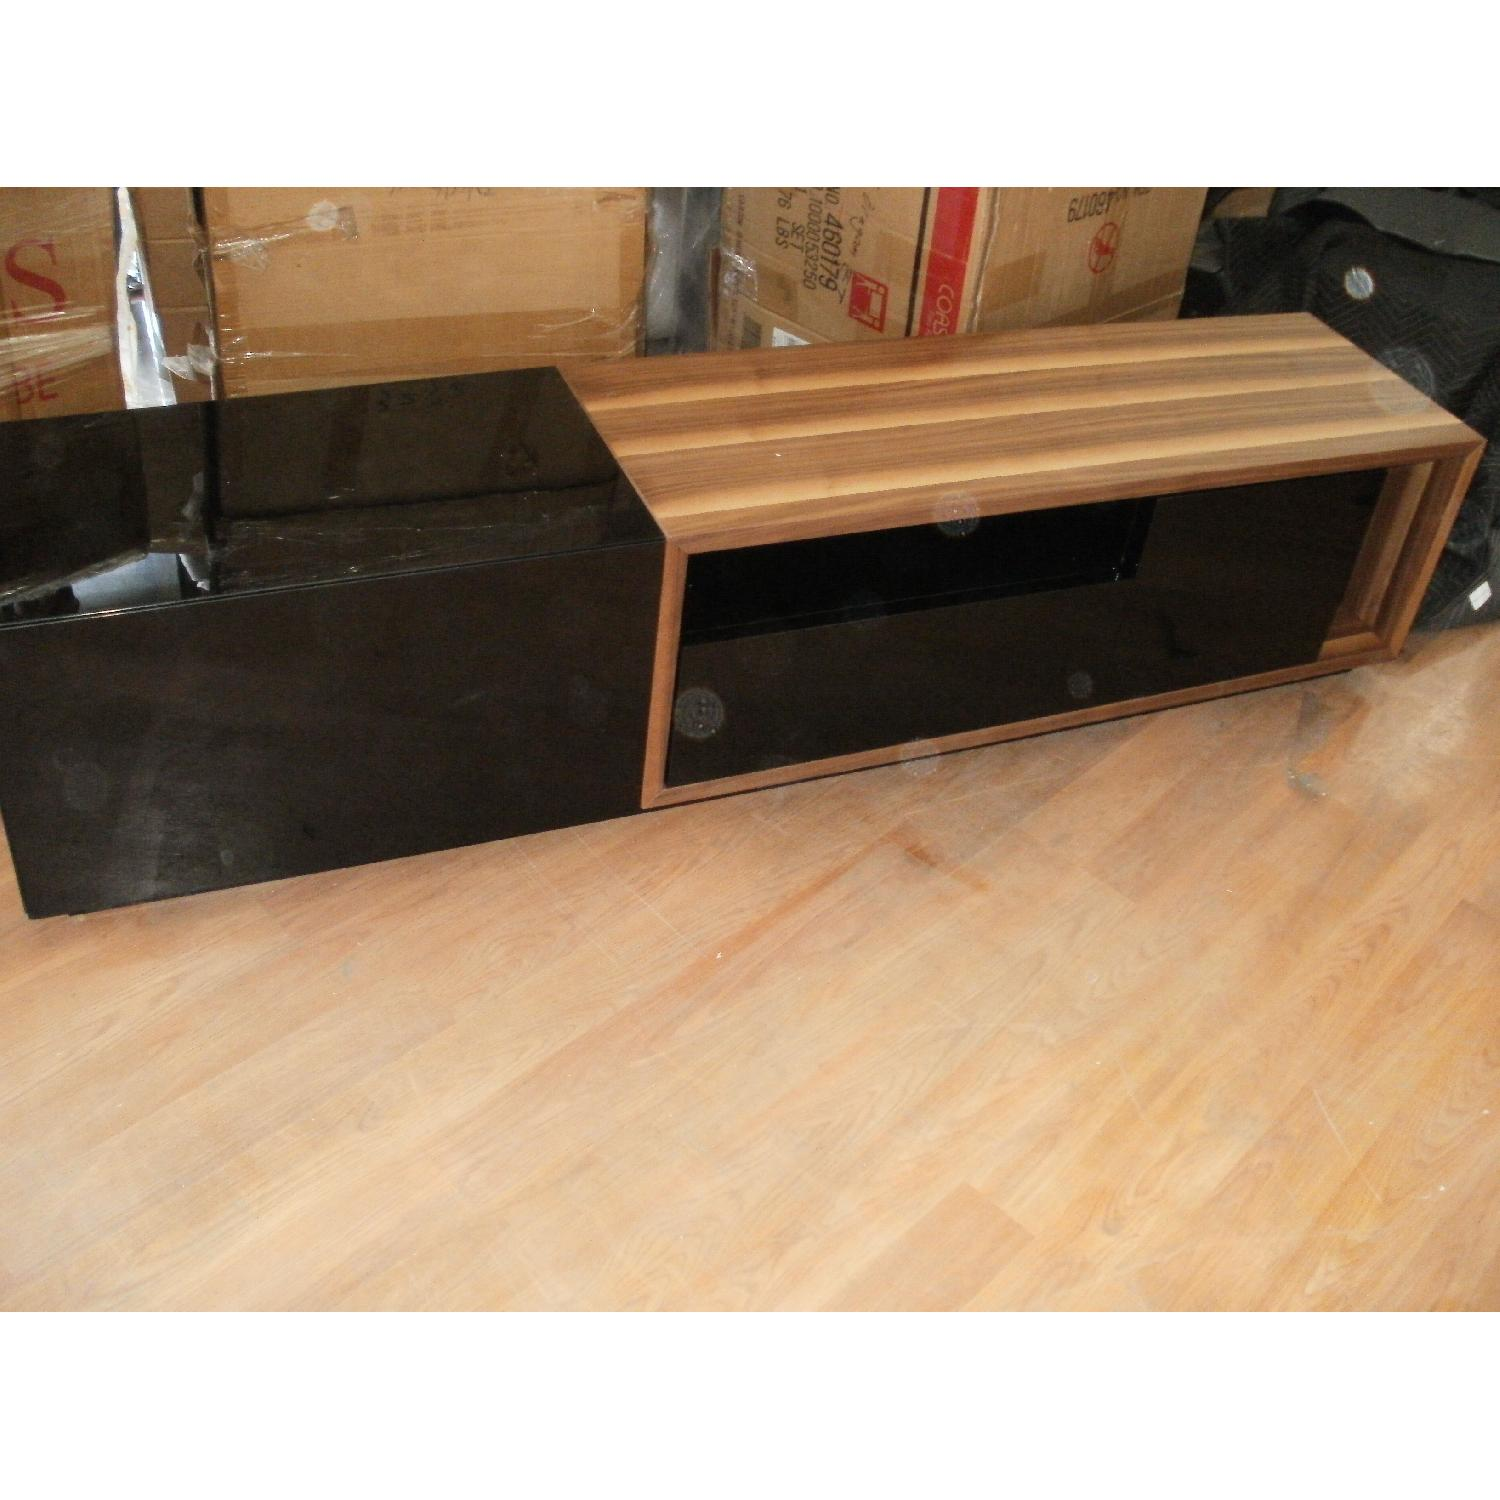 TV Stand w/ Walnut & Black Gloss Finish & Drawers - image-1